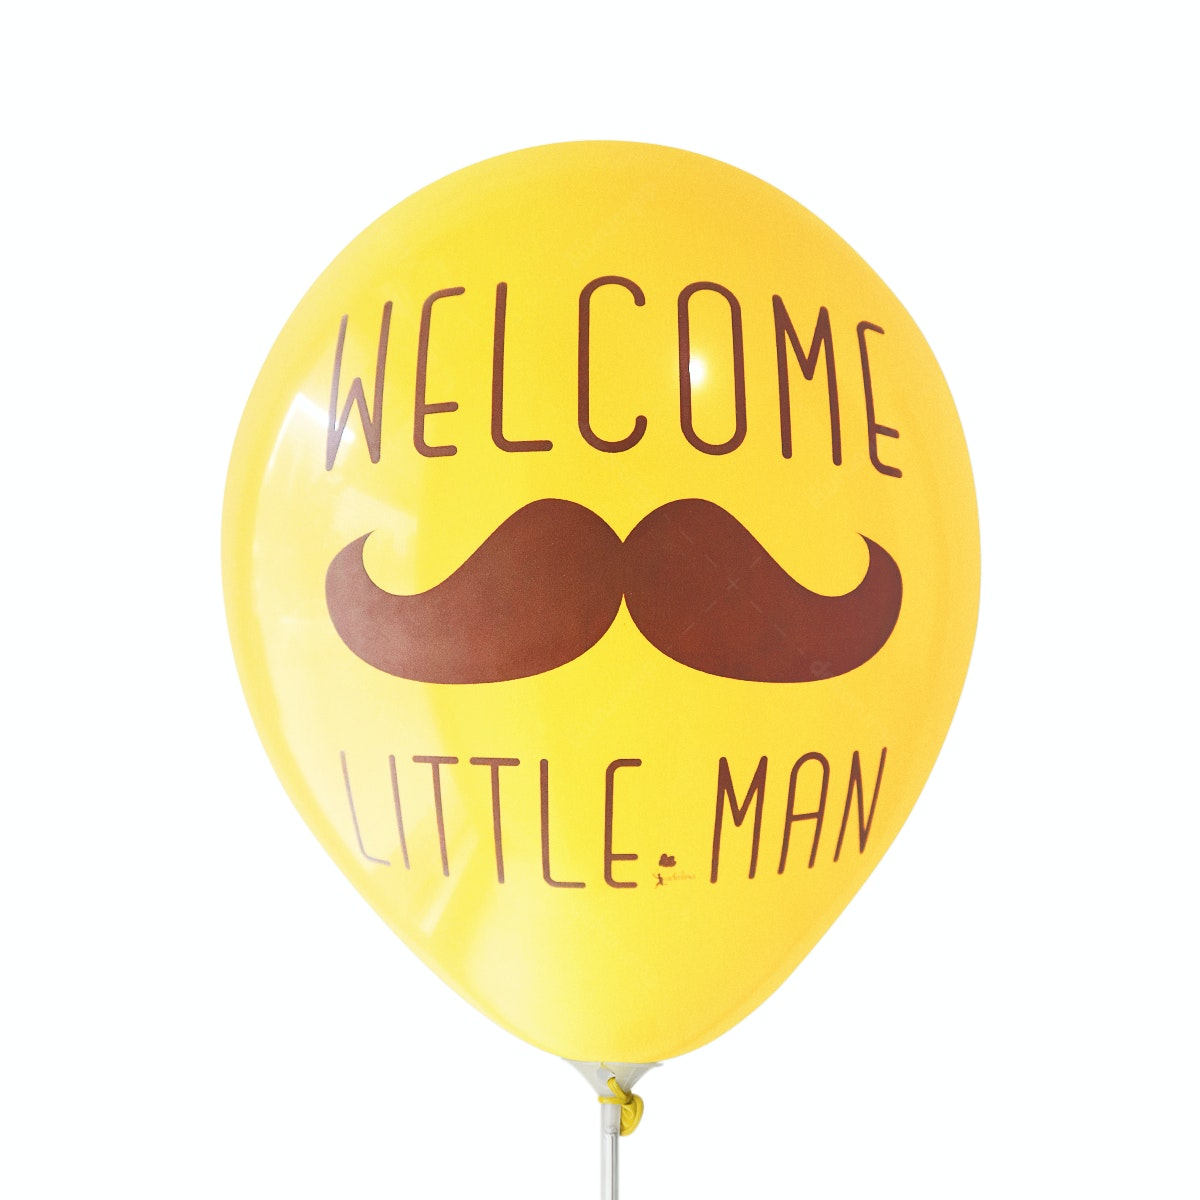 Adalima Balloon Balon Latex Welcome Little Man Golden Yellow QQ